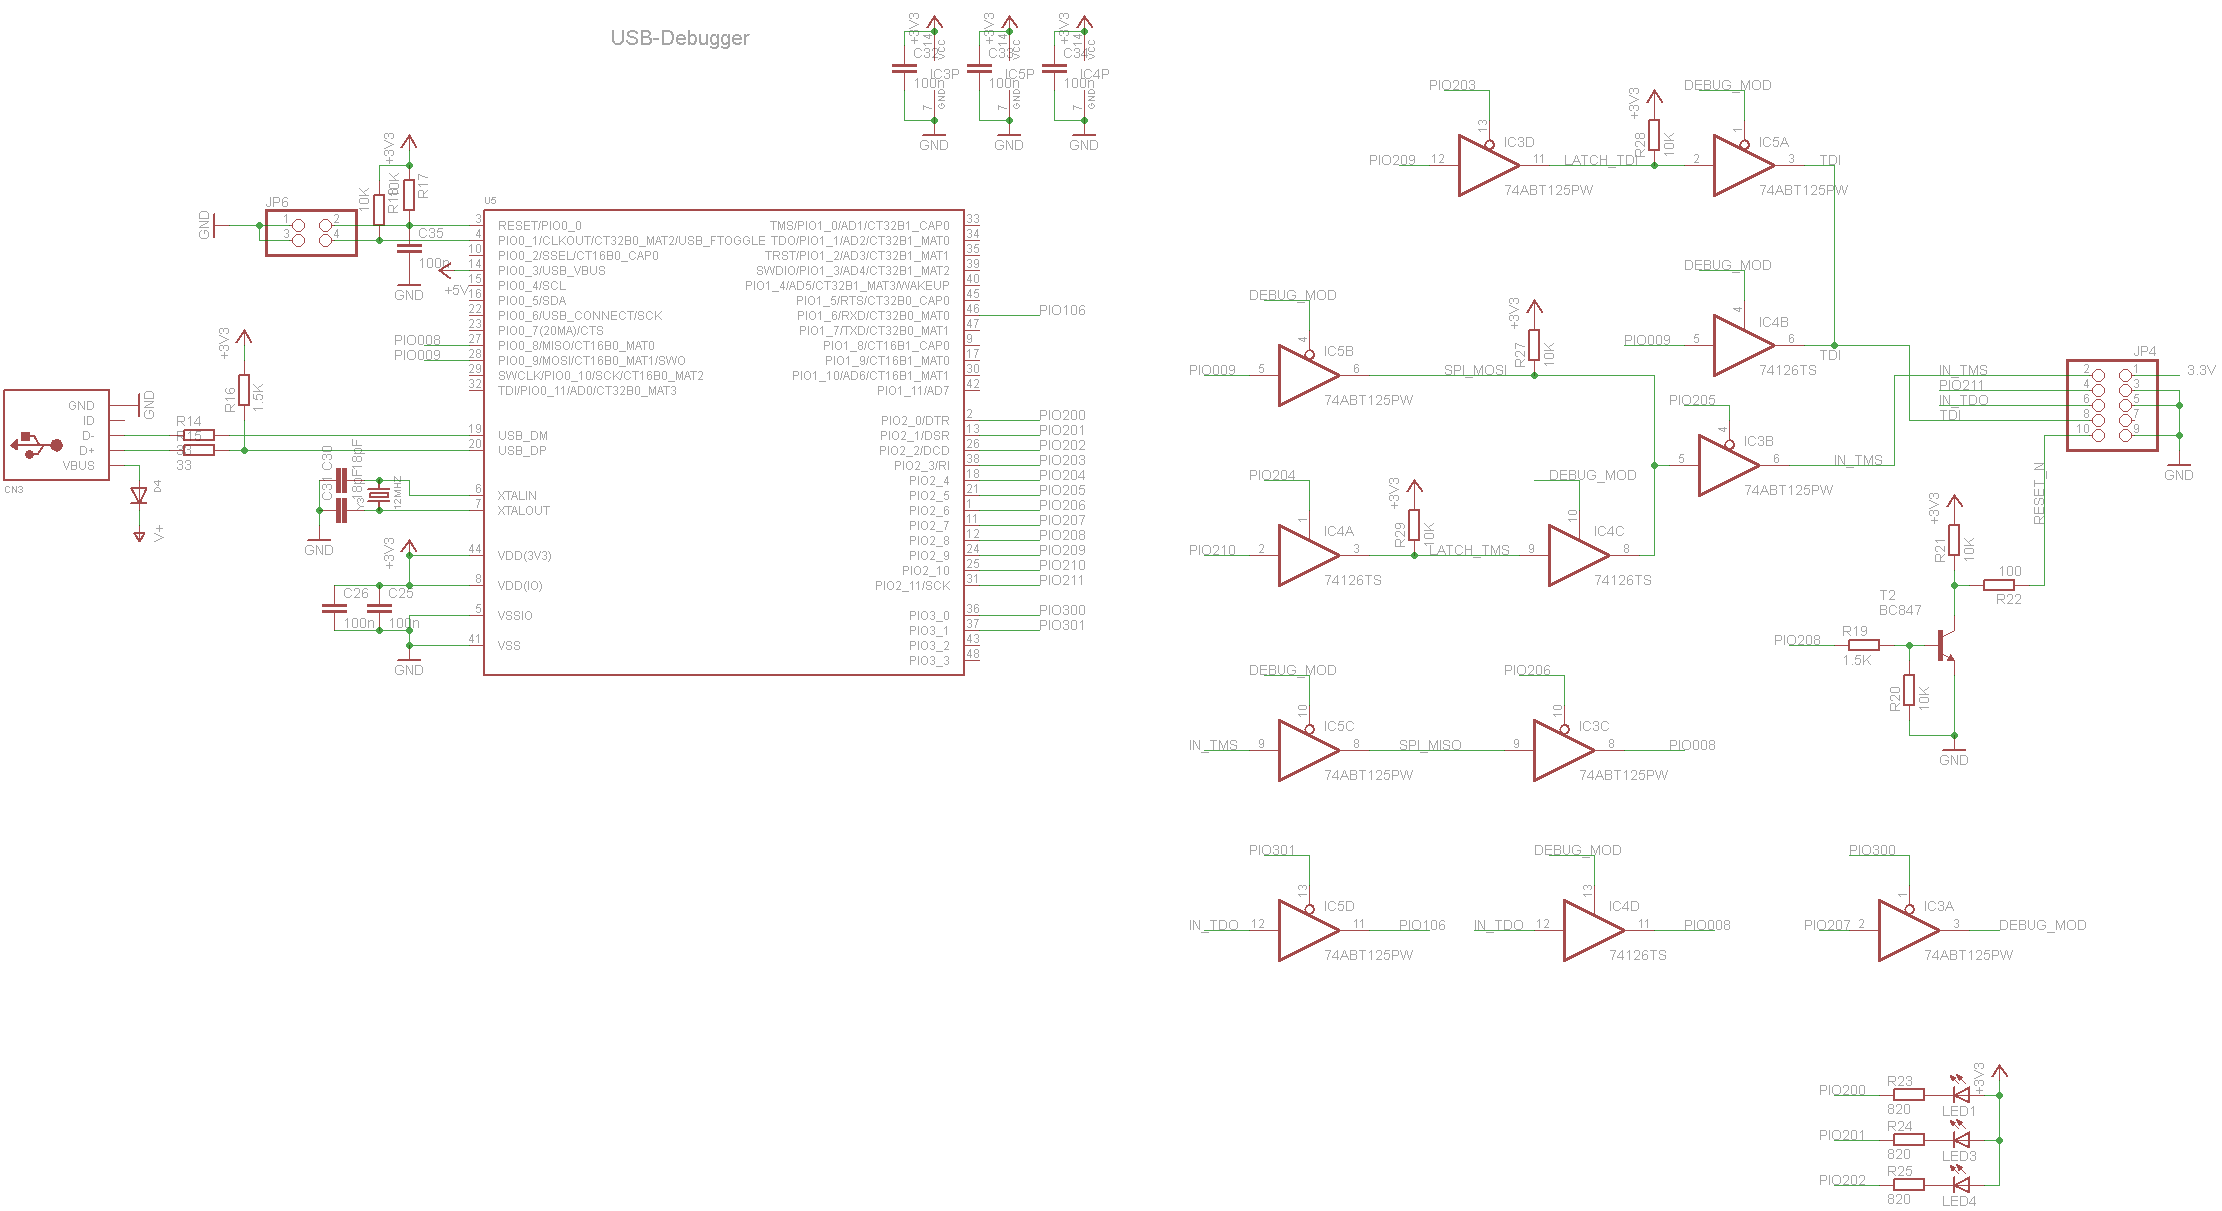 SimpleCortex Onboard debugger Schematic Diagram